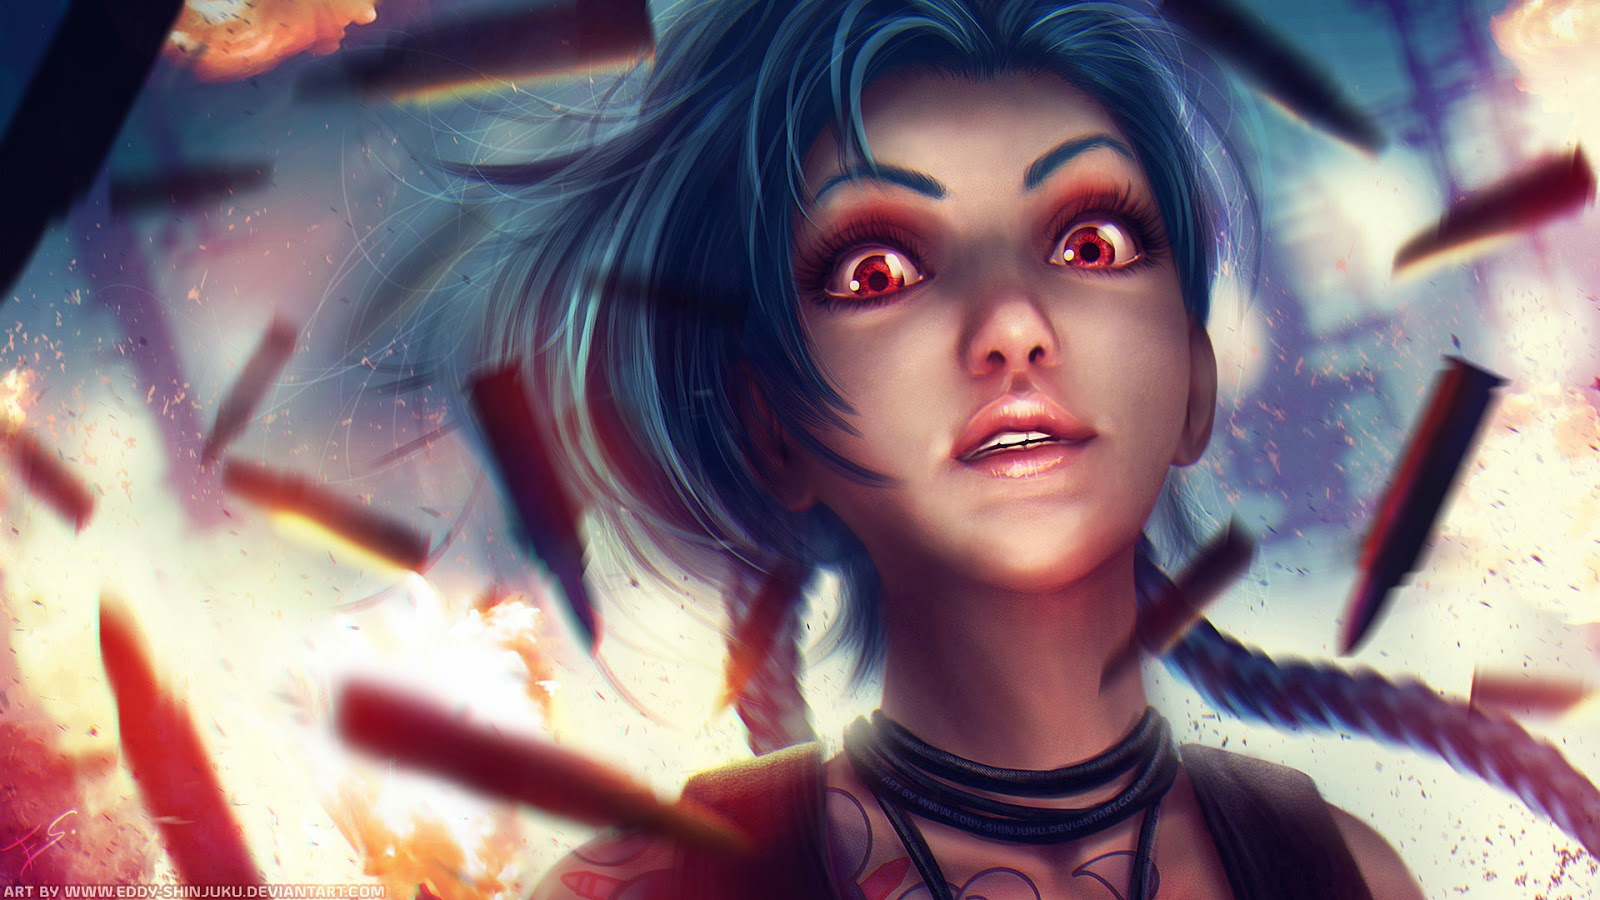 League Of Legends Jinx Wallpaper Jinx League of Legends Wallpaper Jinx Desktop Wallpaper